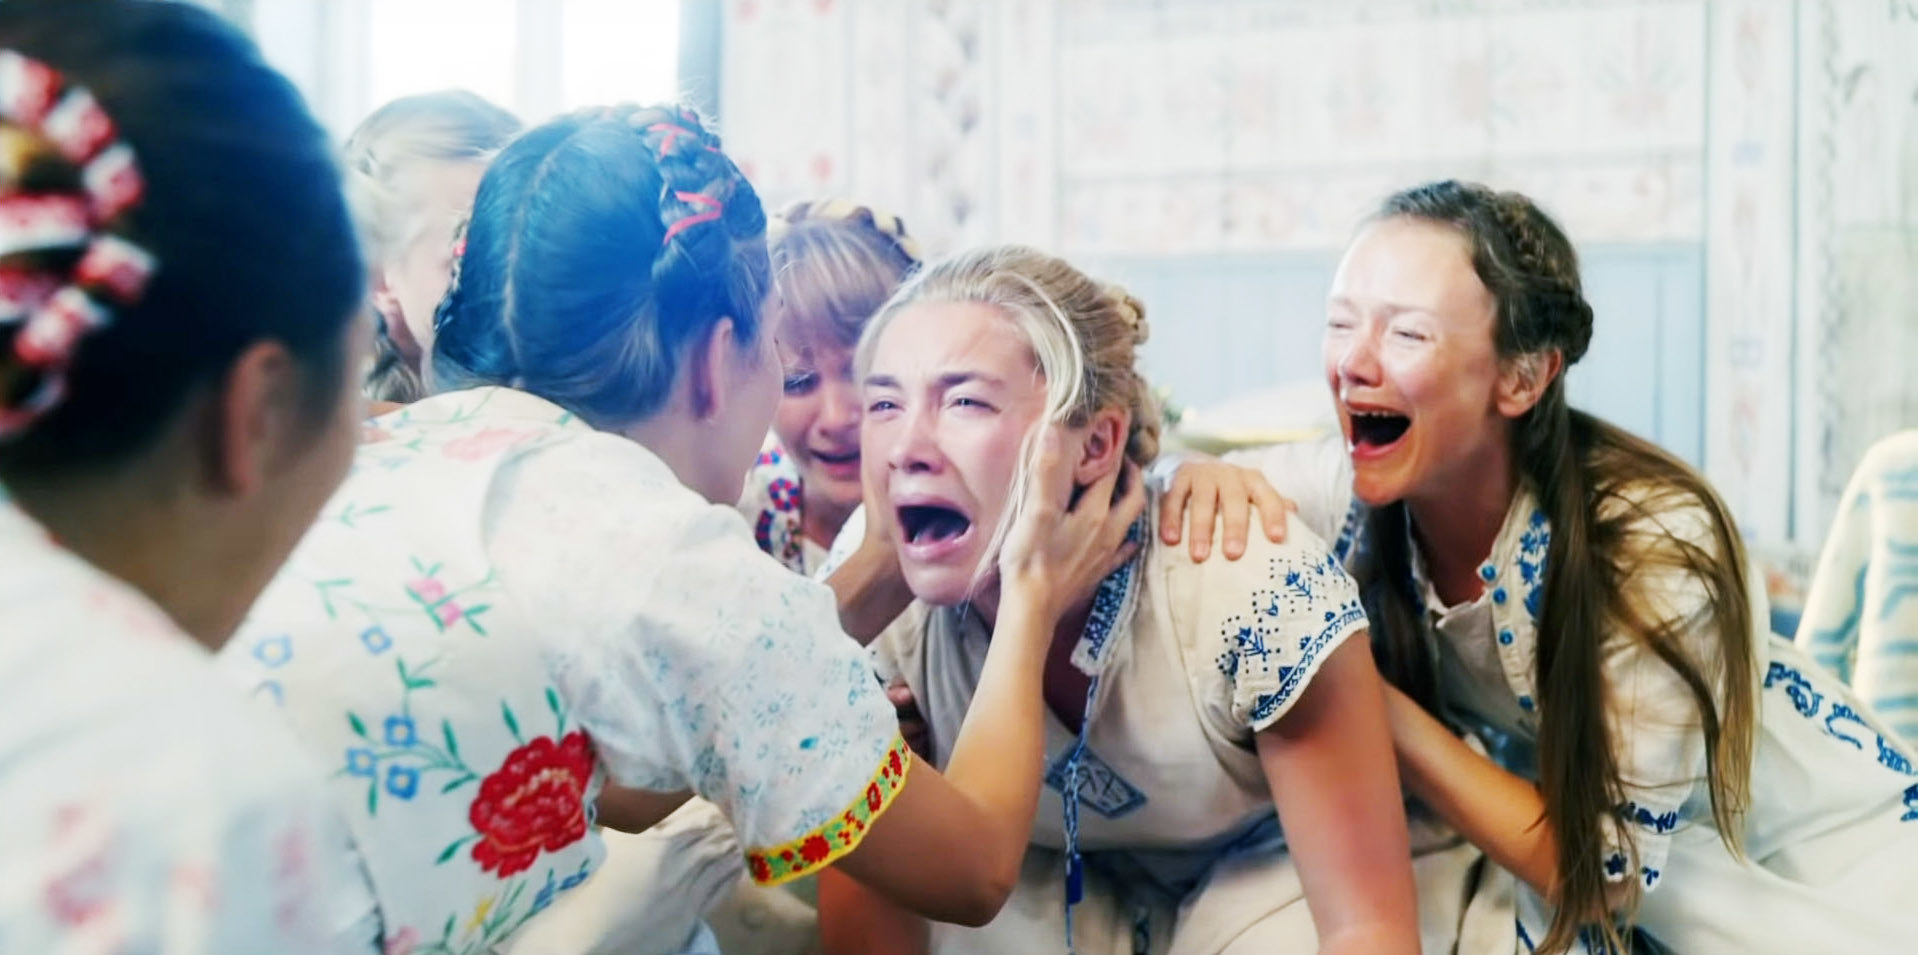 Florence Pugh crying in horror